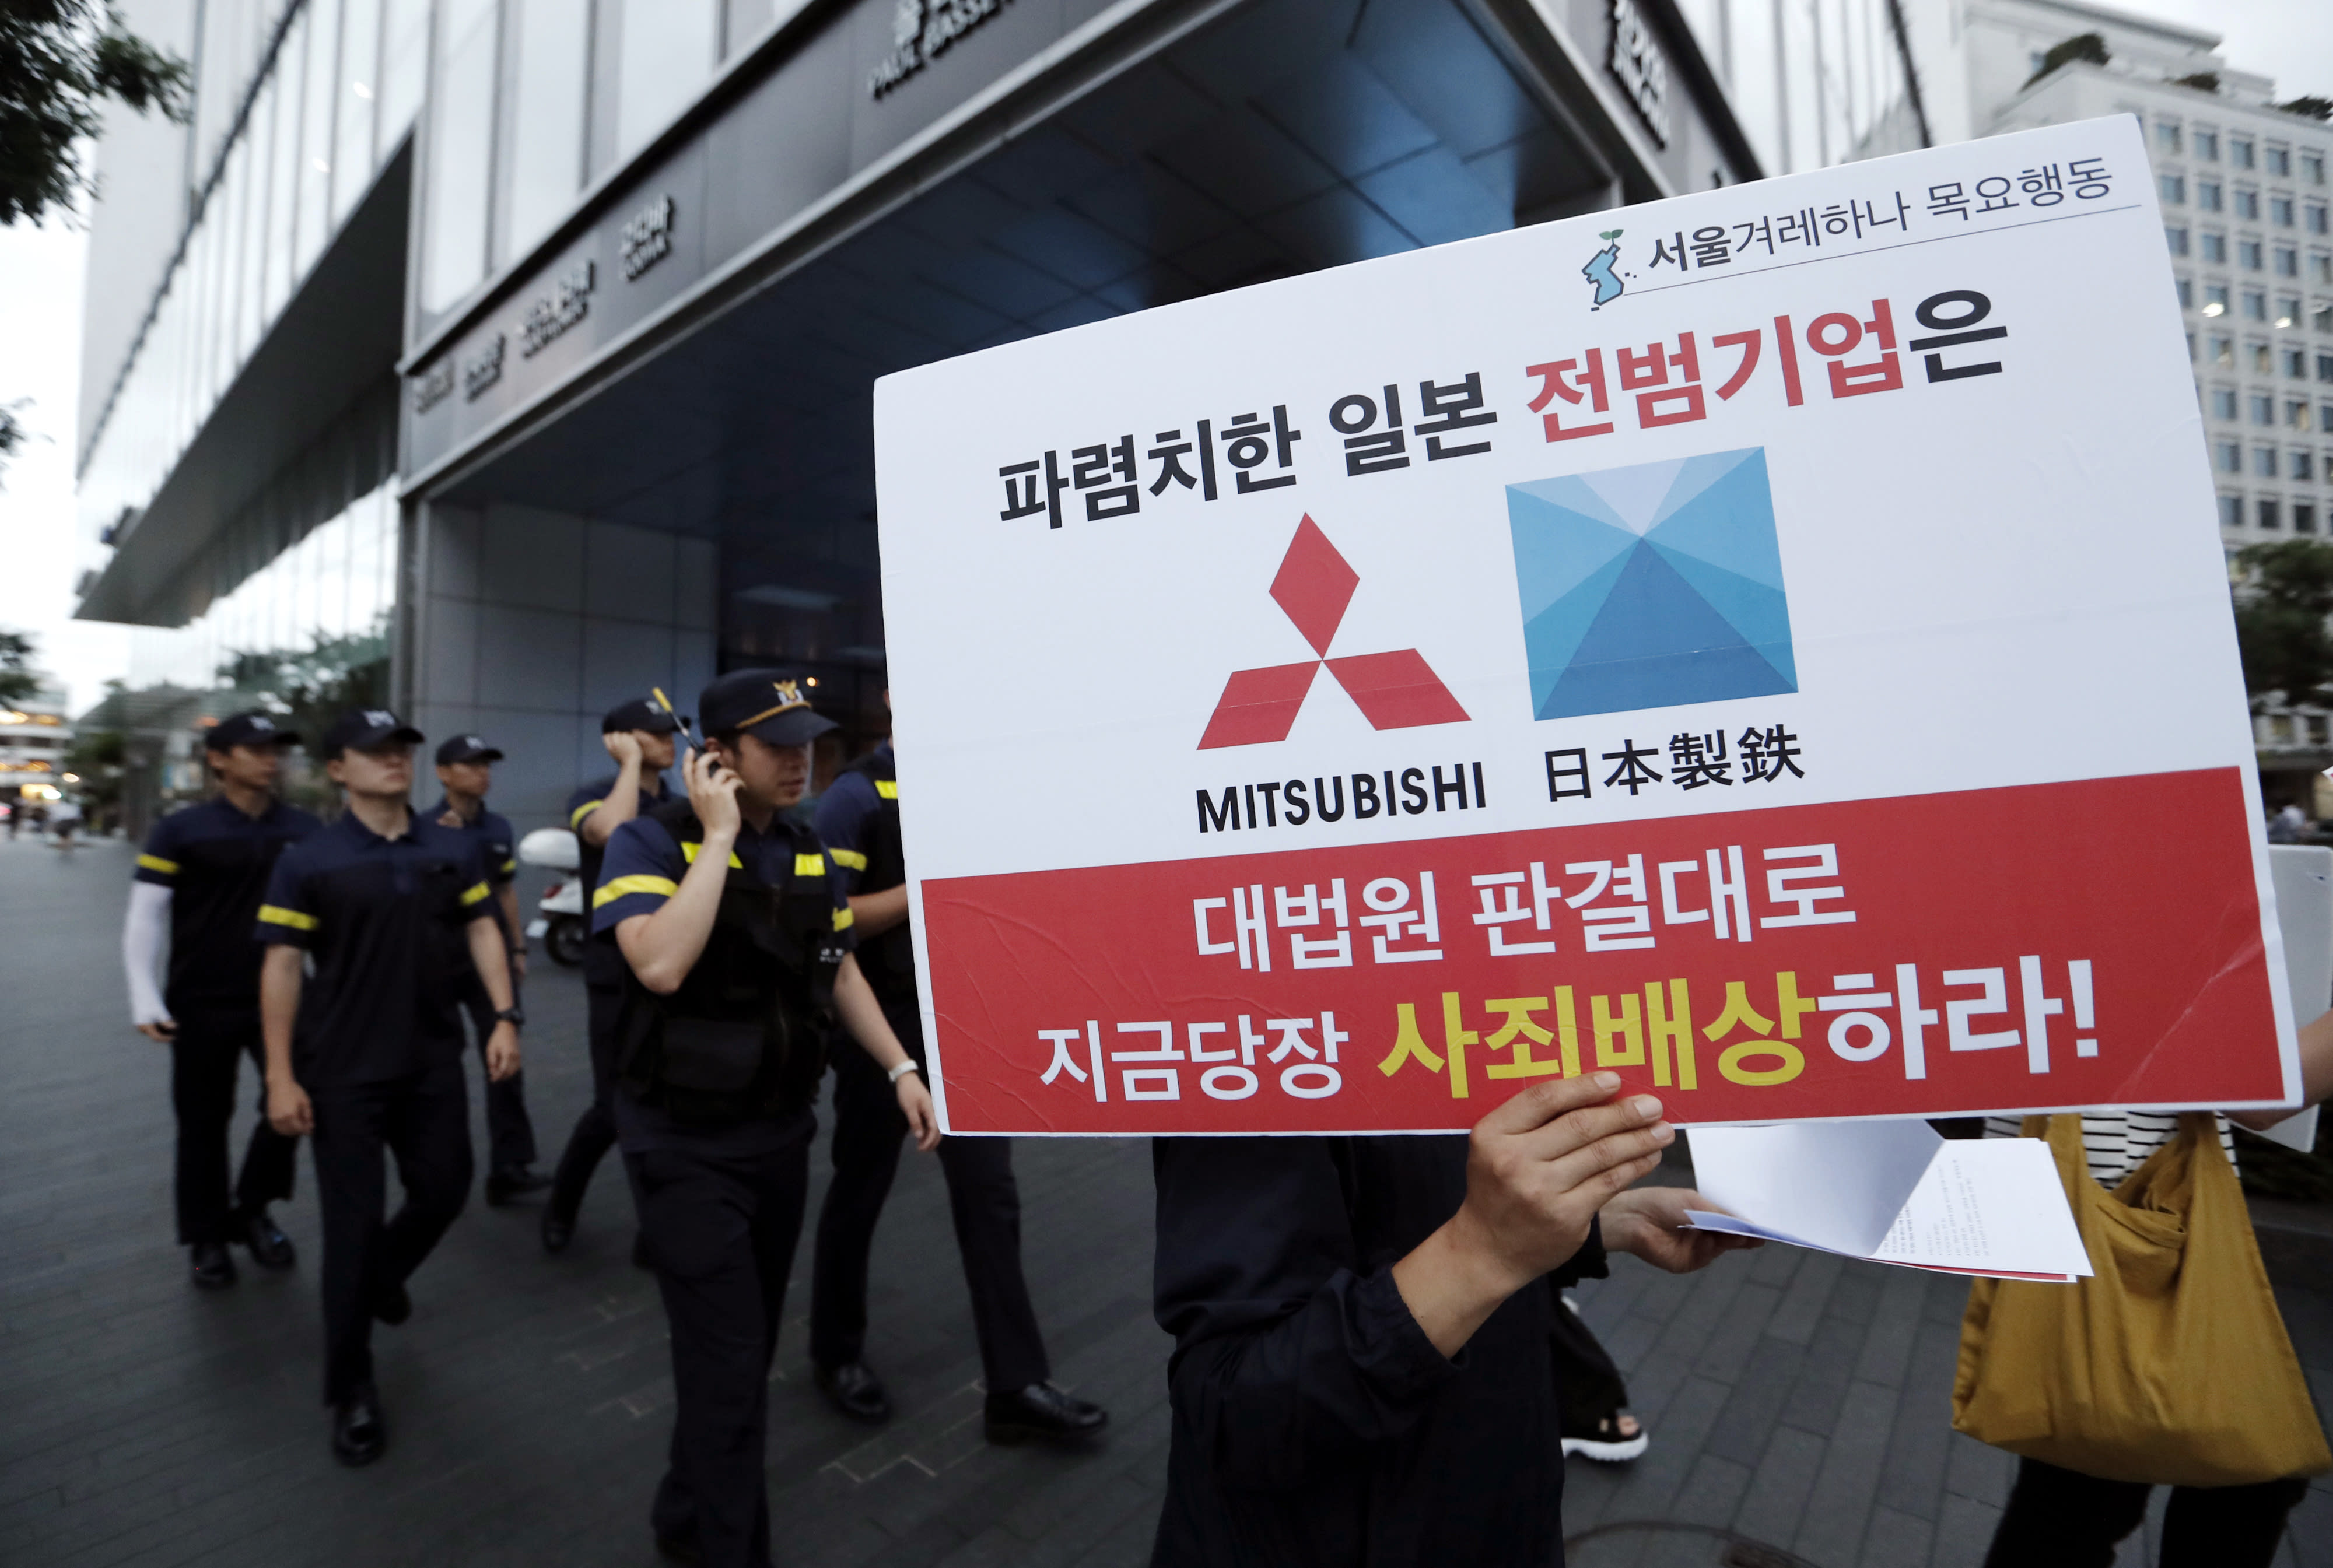 "FILE - In this July 11, 2019, file photo, a protester with a banner walks to attend a rally denouncing the Japanese government's decision on their exports to South Korea in front of the Japanese Embassy in Seoul, South Korea. The modern legacy of a dark chapter in Japan's history, when hundreds of thousands of people were brought from the Korean Peninsula and other Asian nations to work in logging, in mines, on farms and in factories as forced labor, lives on in the companies that came to dominate the Japanese economy after World War II. Many of those companies are still facing demands for compensation that they say were settled by treaty decades ago. The sign reads ""The shameless Japanese company should immediately compensate for its war crimes in accordance with the Supreme Court ruling."" (AP Photo/Ahn Young-joon, File)"